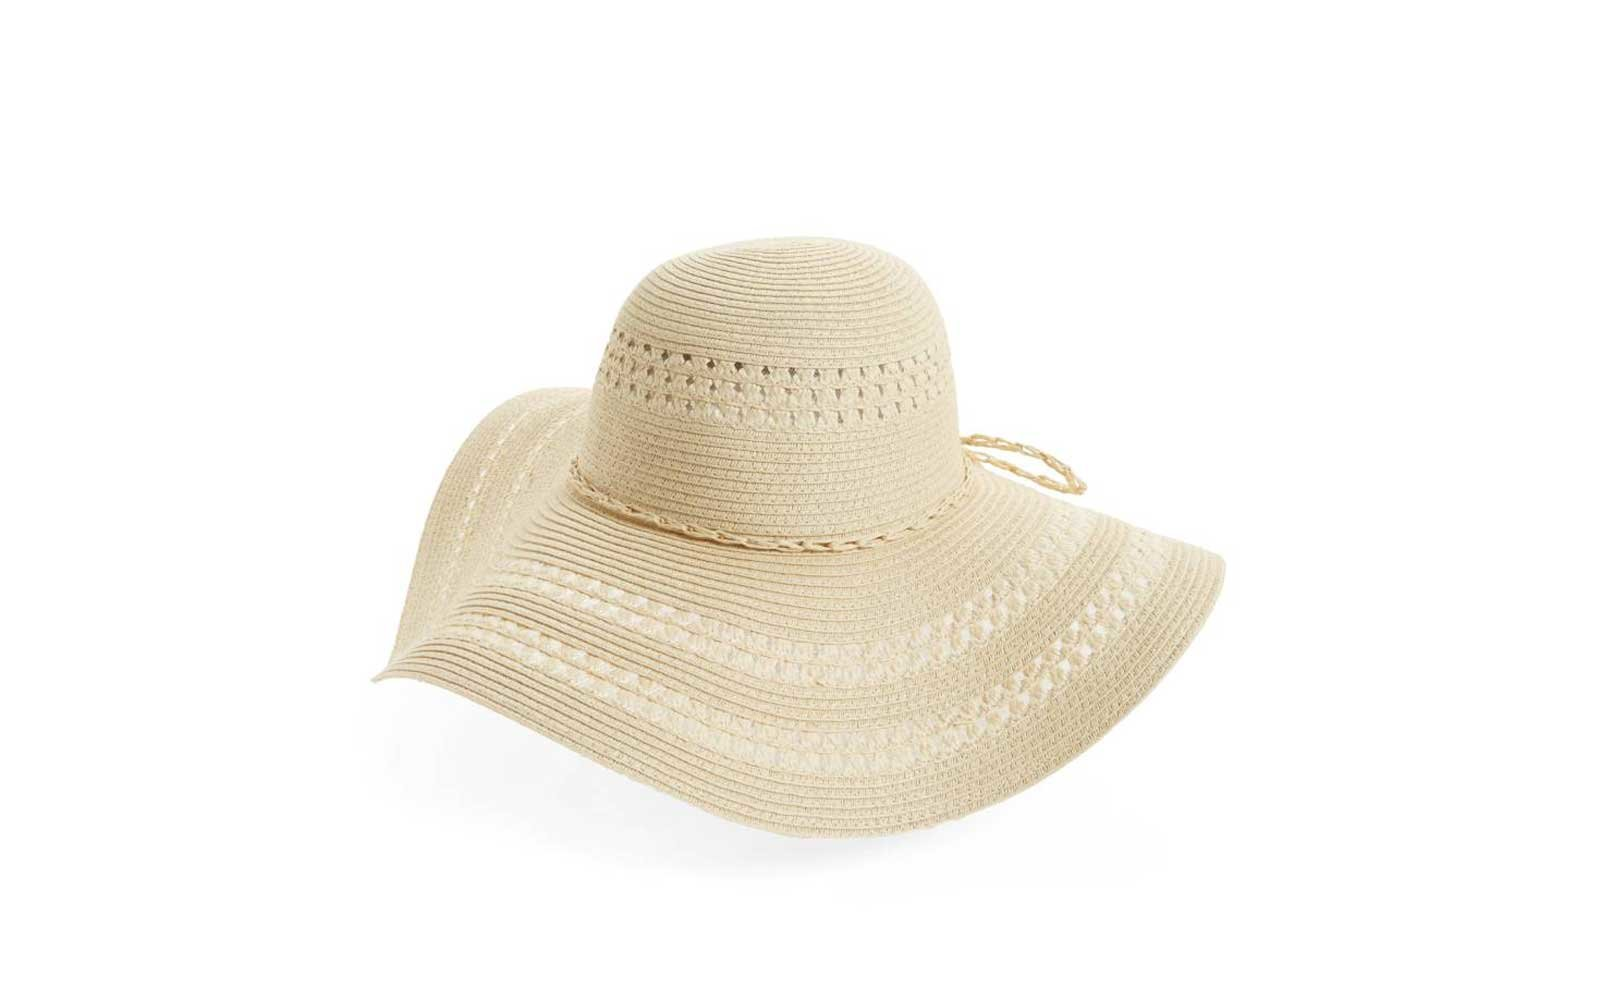 FITS Floppy Woven Straw Hat